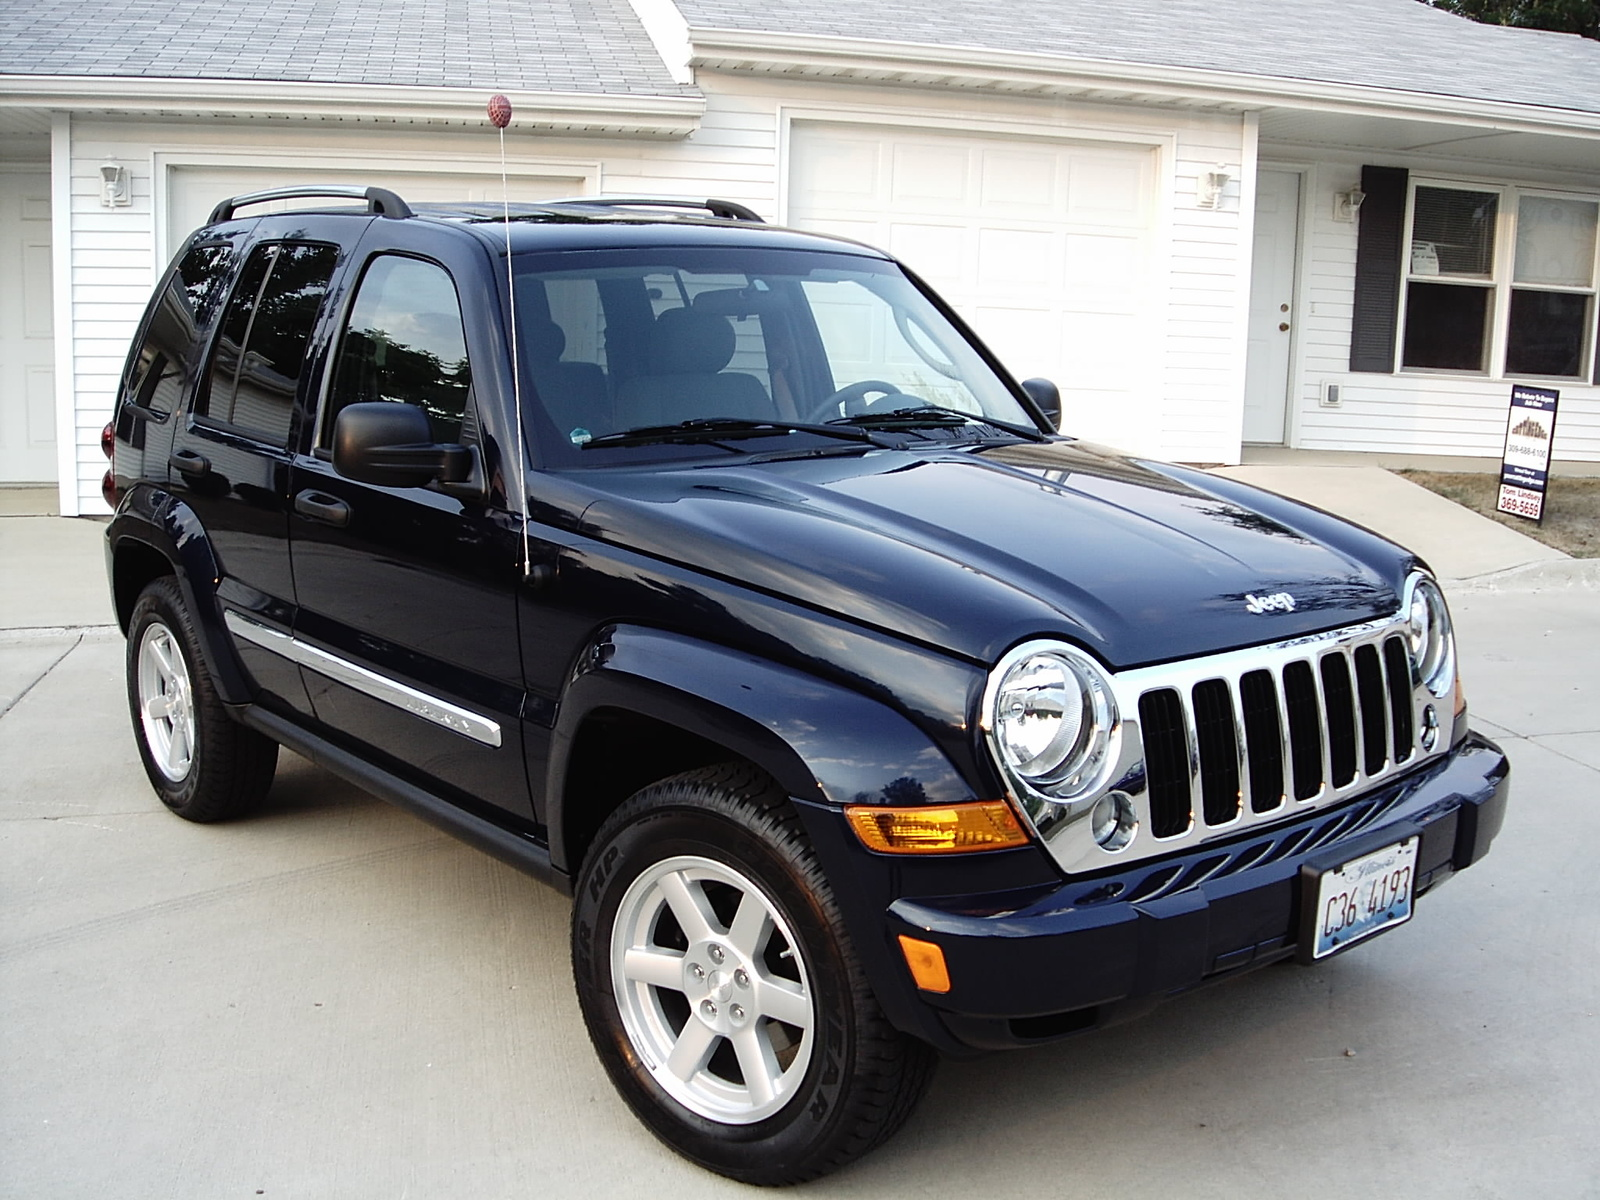 2005 jeep liberty exterior pictures cargurus. Black Bedroom Furniture Sets. Home Design Ideas